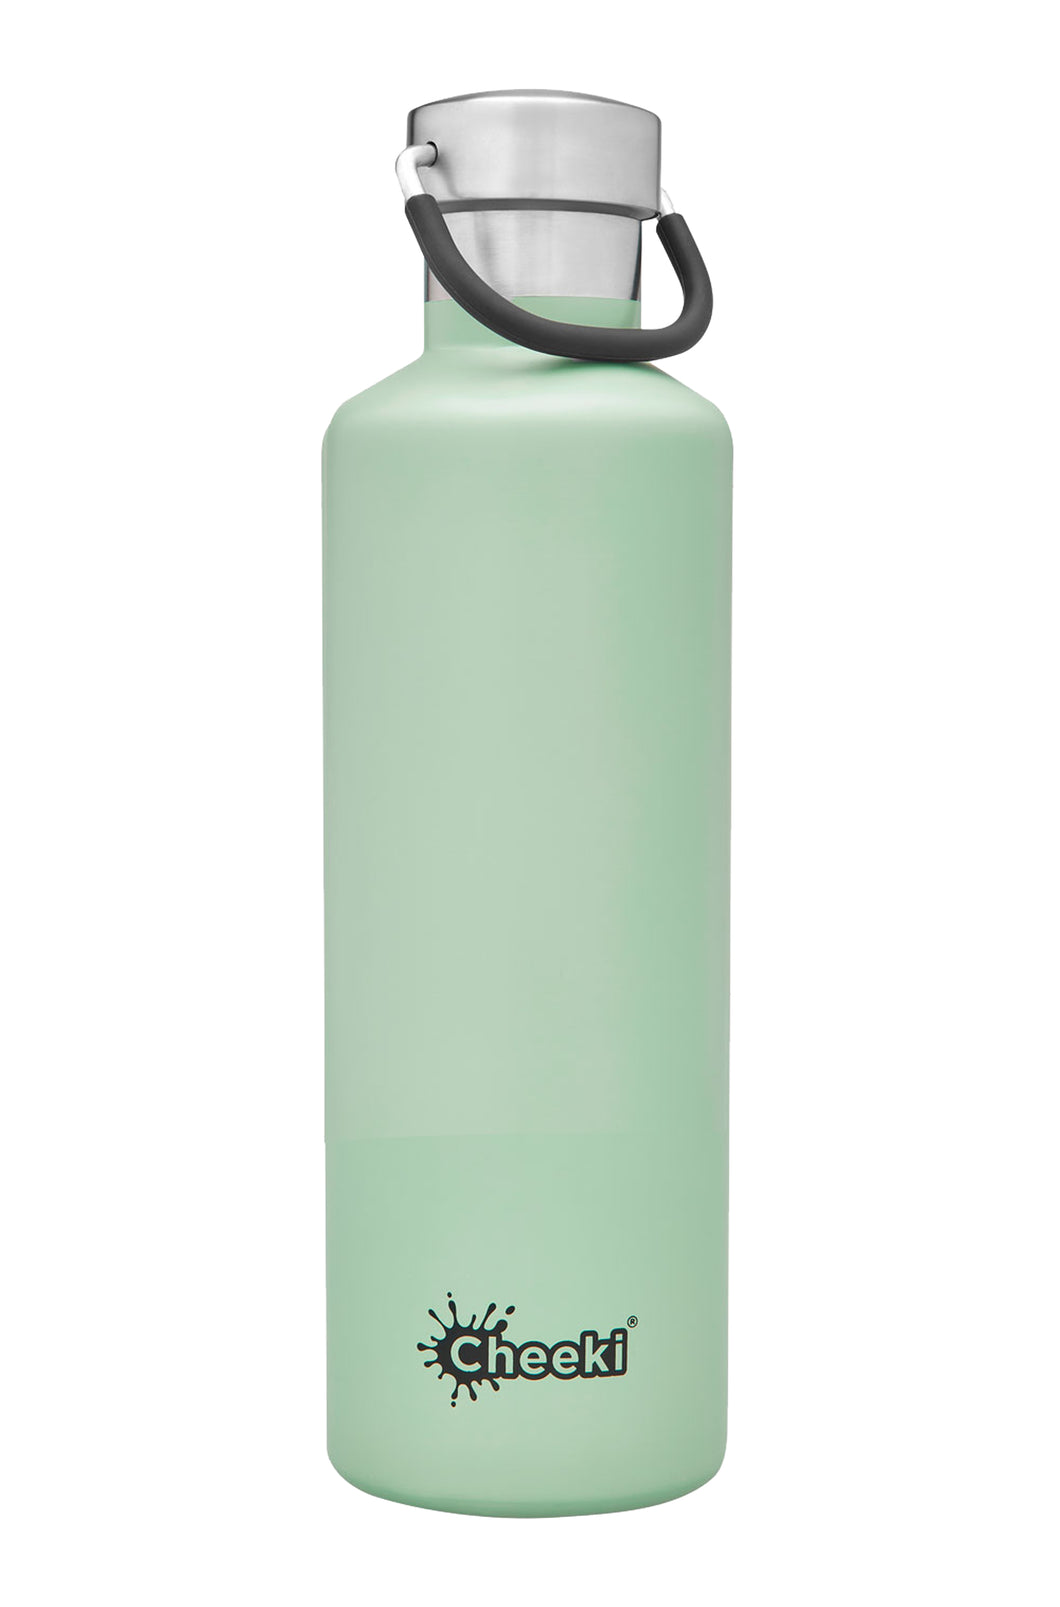 Cheeki 600ml Insulated Bottle - Pistachio